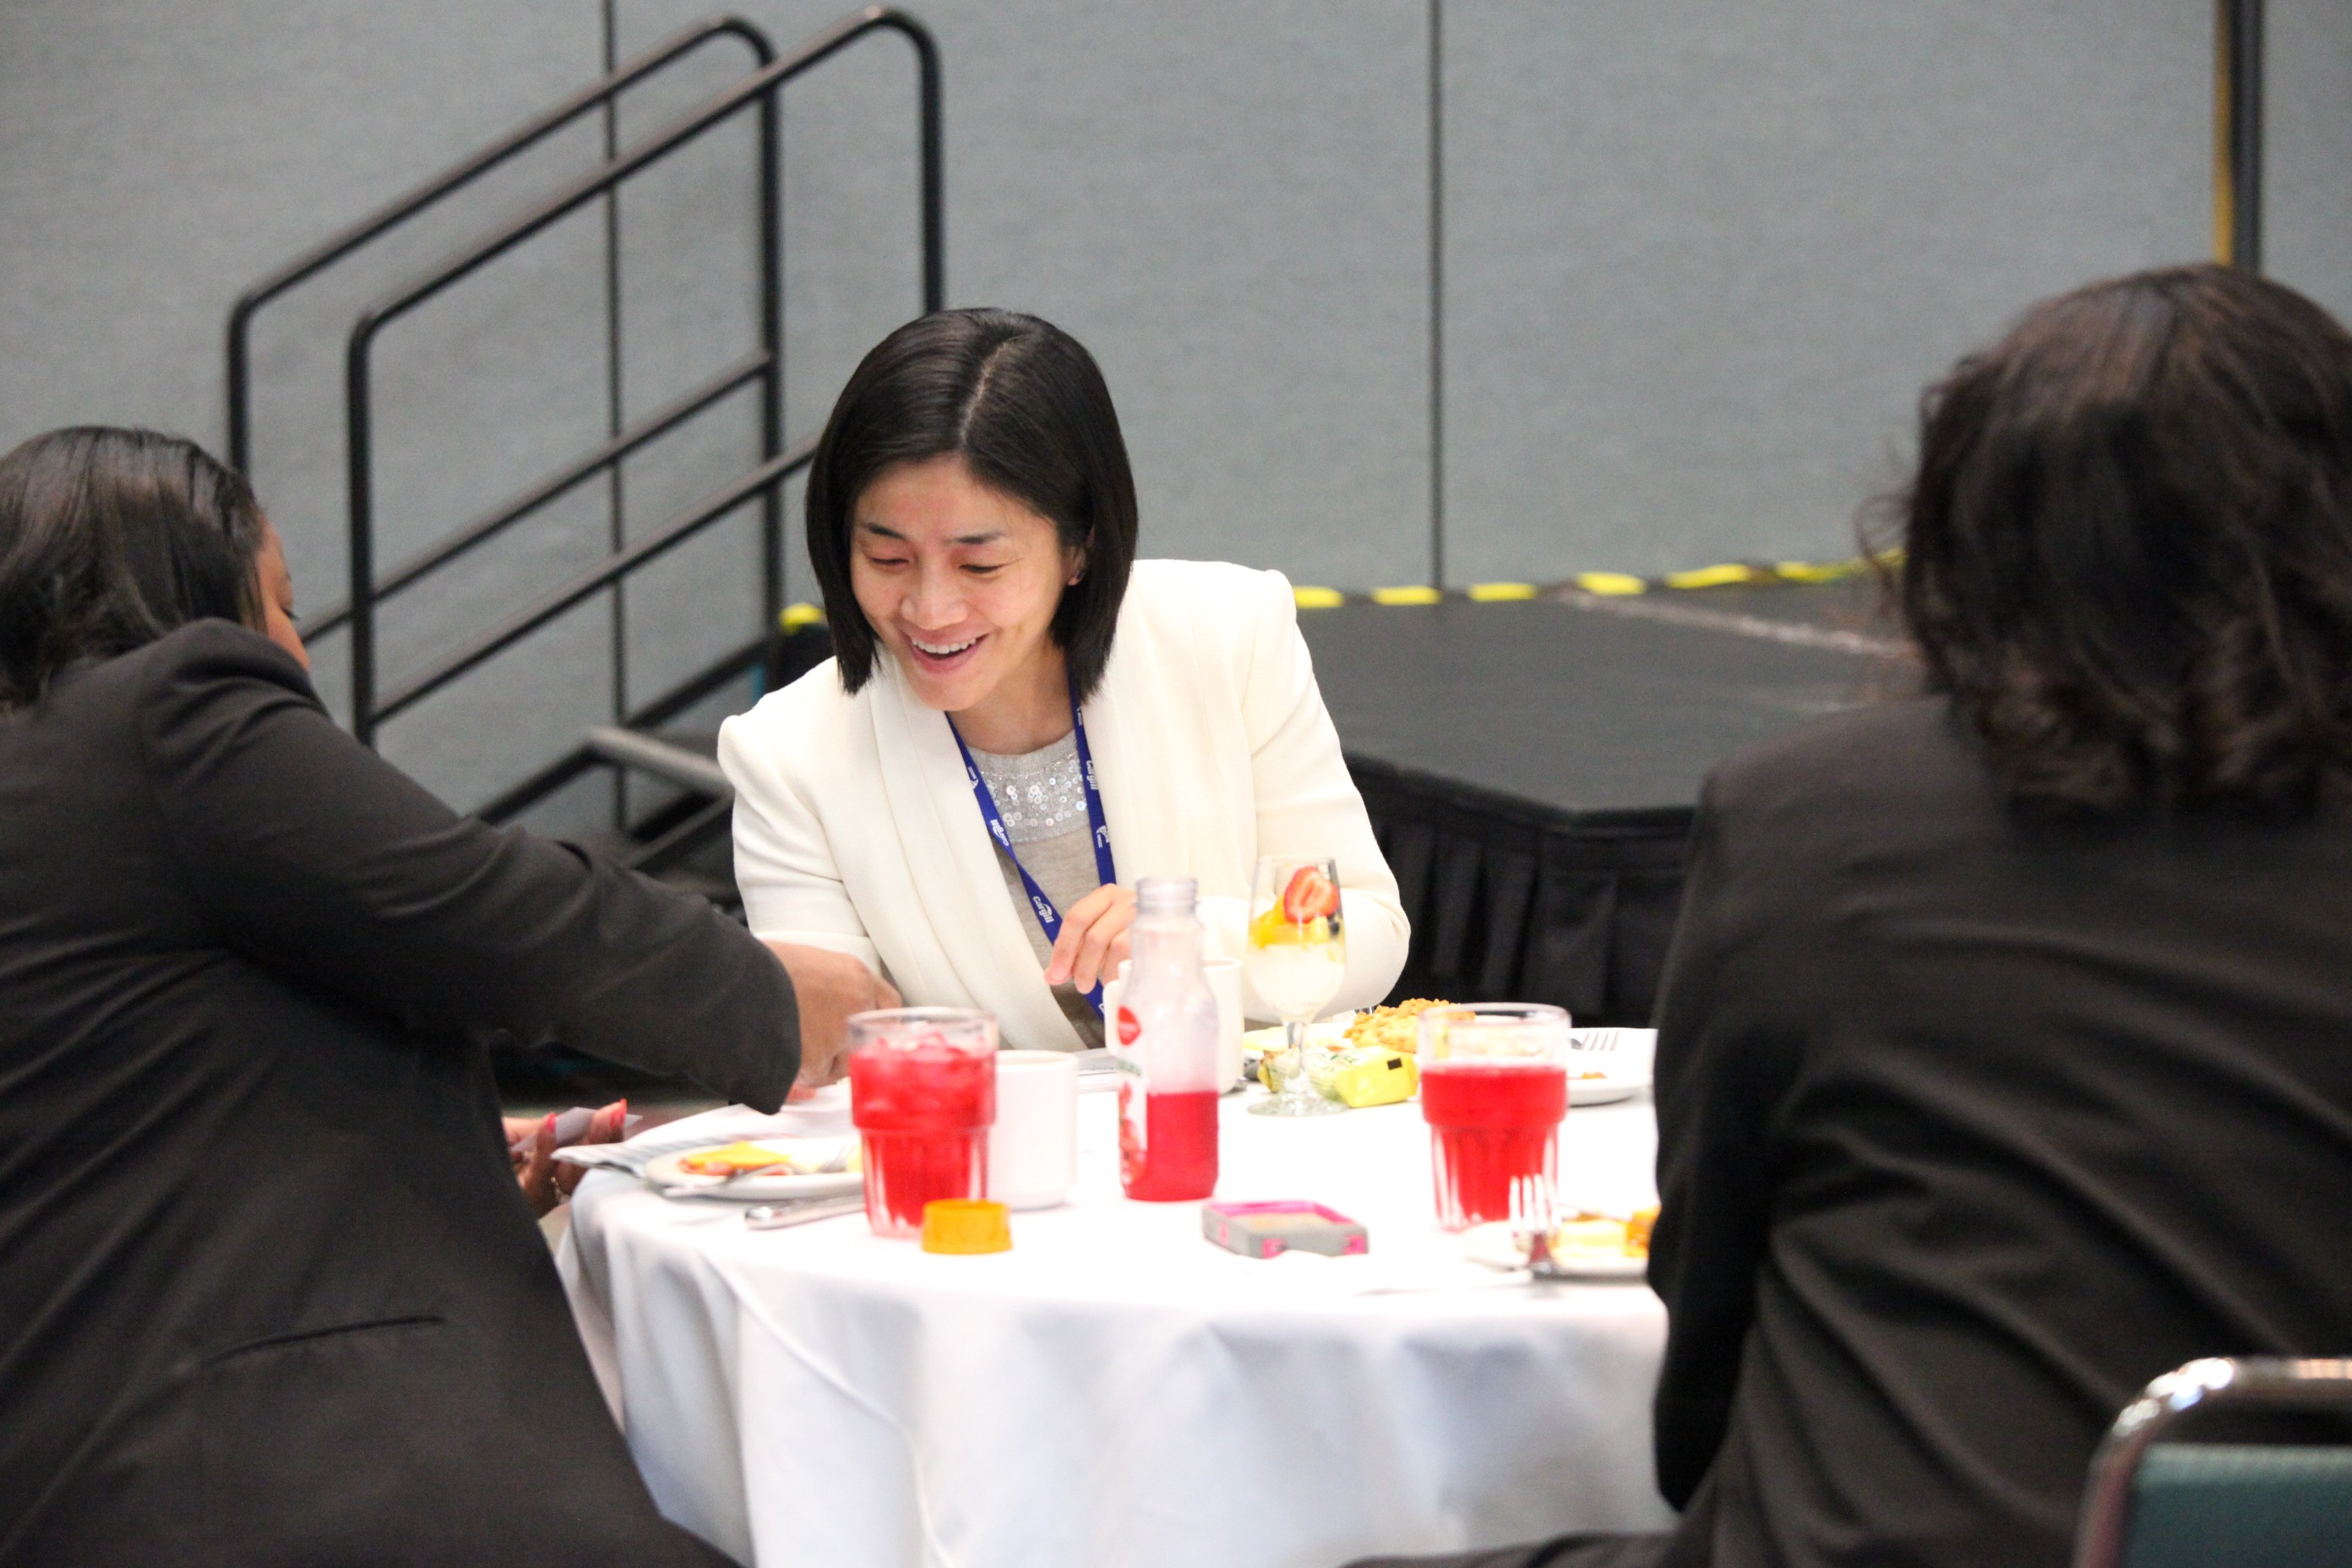 NMSDC guests exchange business cards at Wednesday's Networking Continental Breakfast.